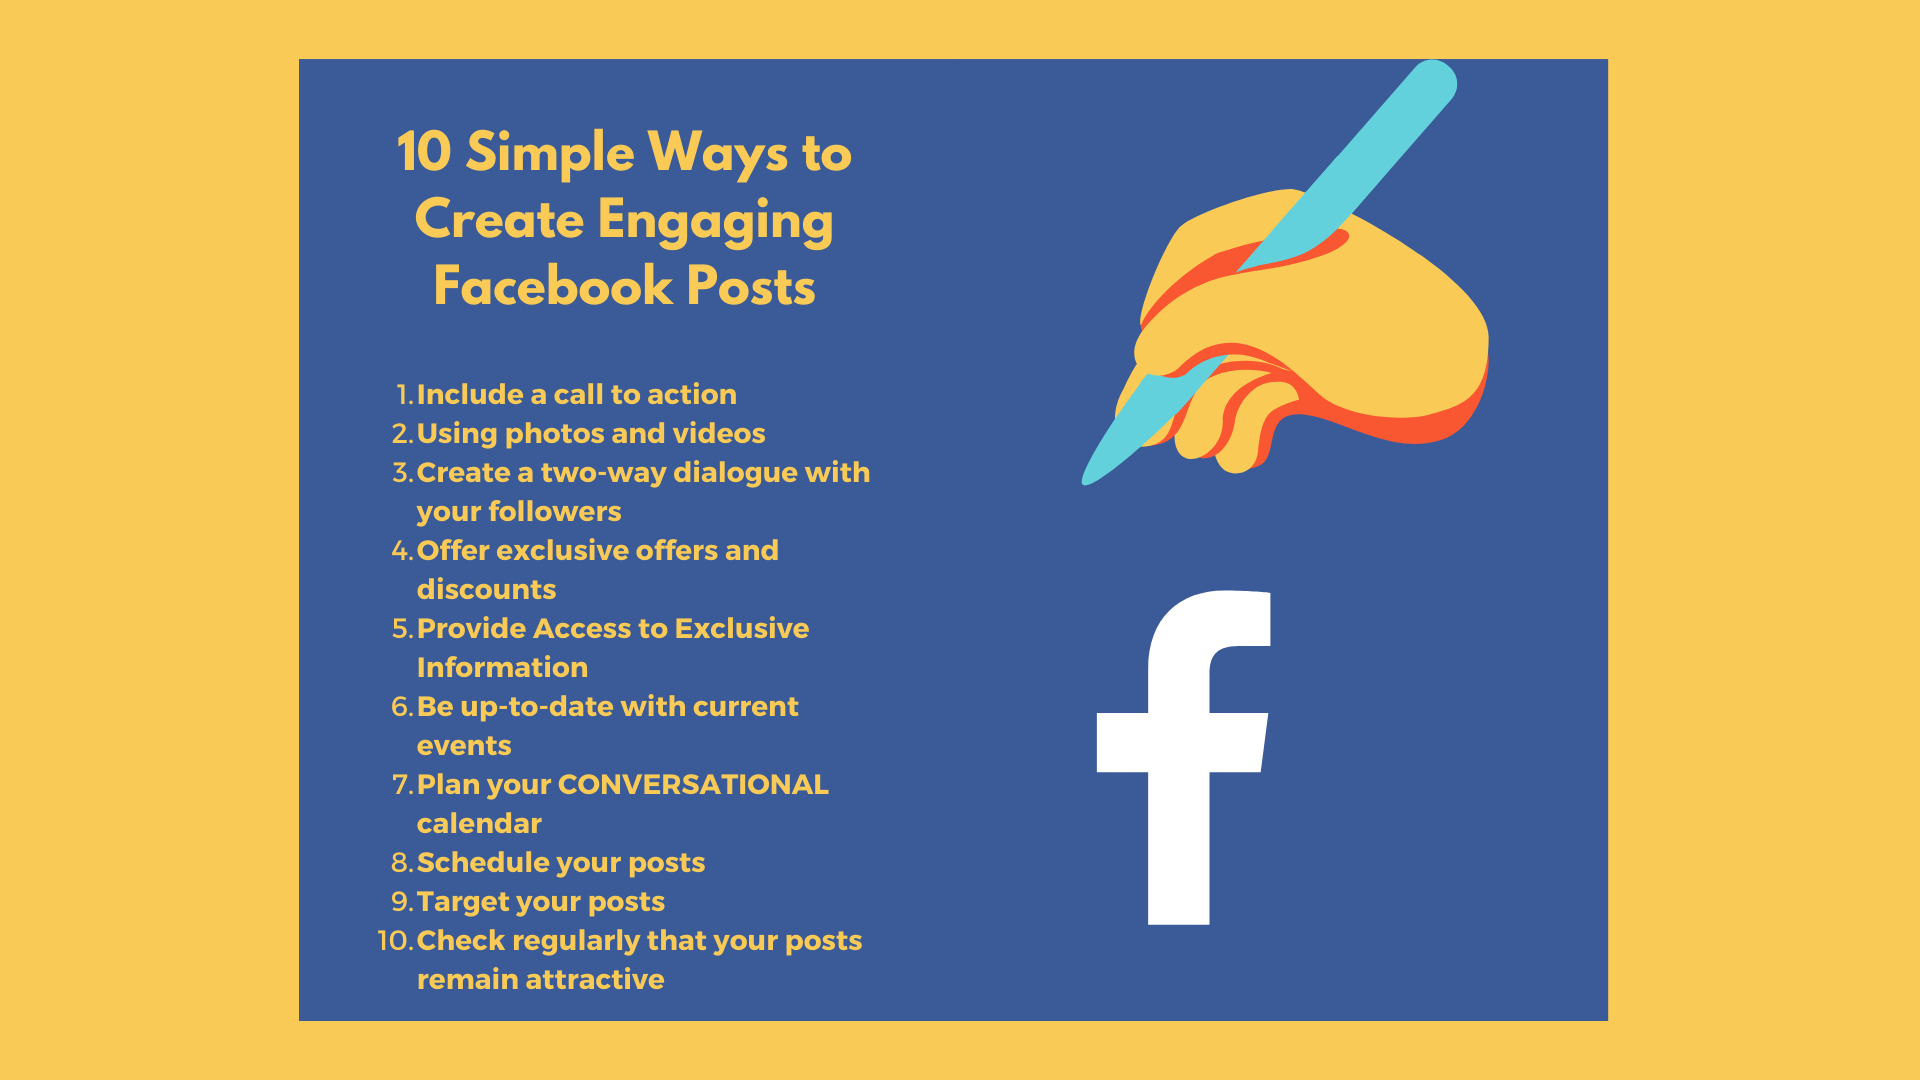 10 Simple Ways to Create Engaging Facebook Posts